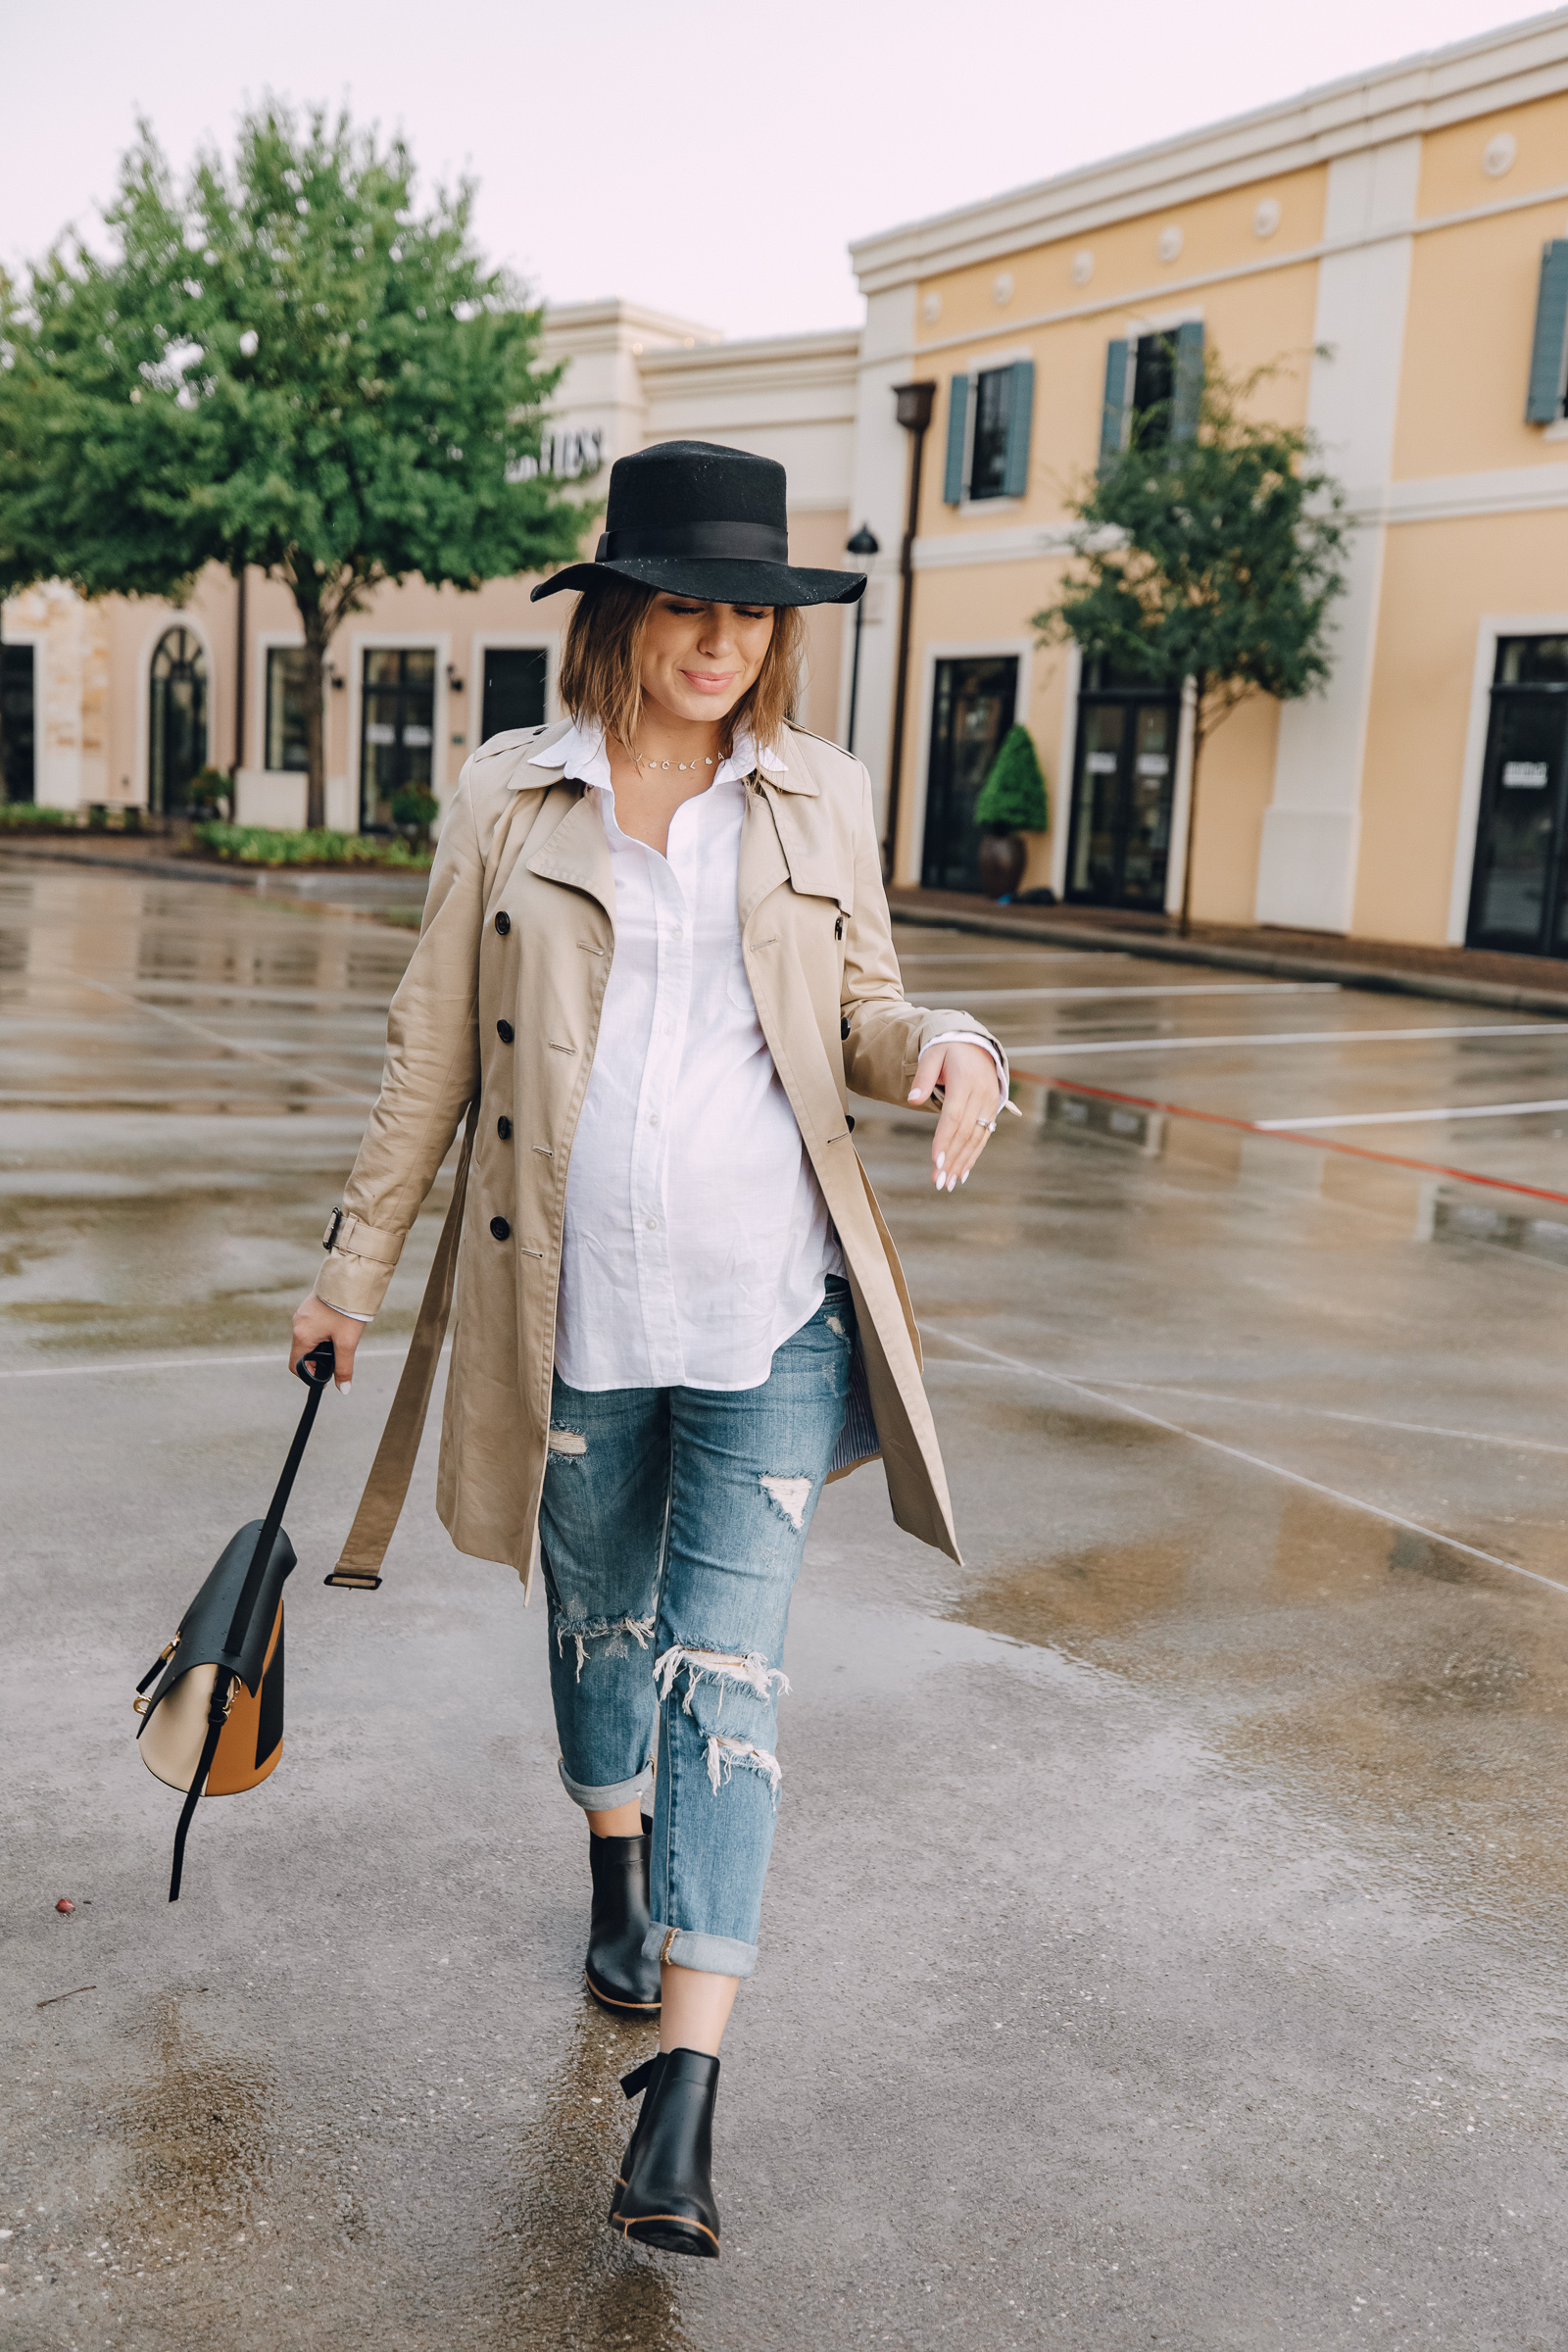 Elly Brown wears a trench coat with girlfriend denim for a rainy day outfit